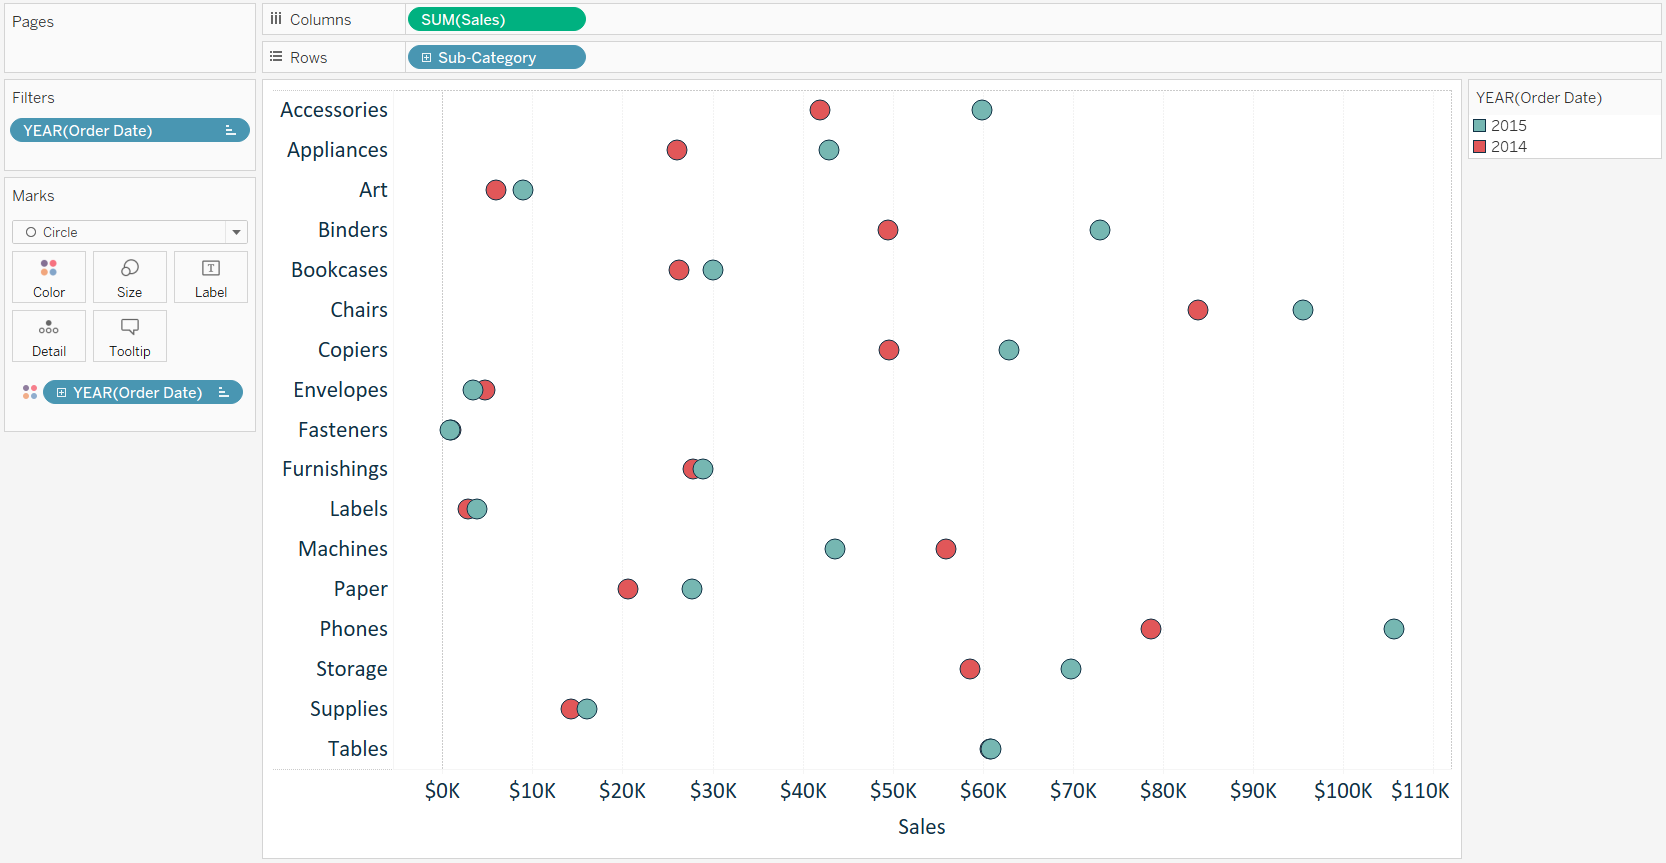 tableau-sales-by-sub-category-dot-plot